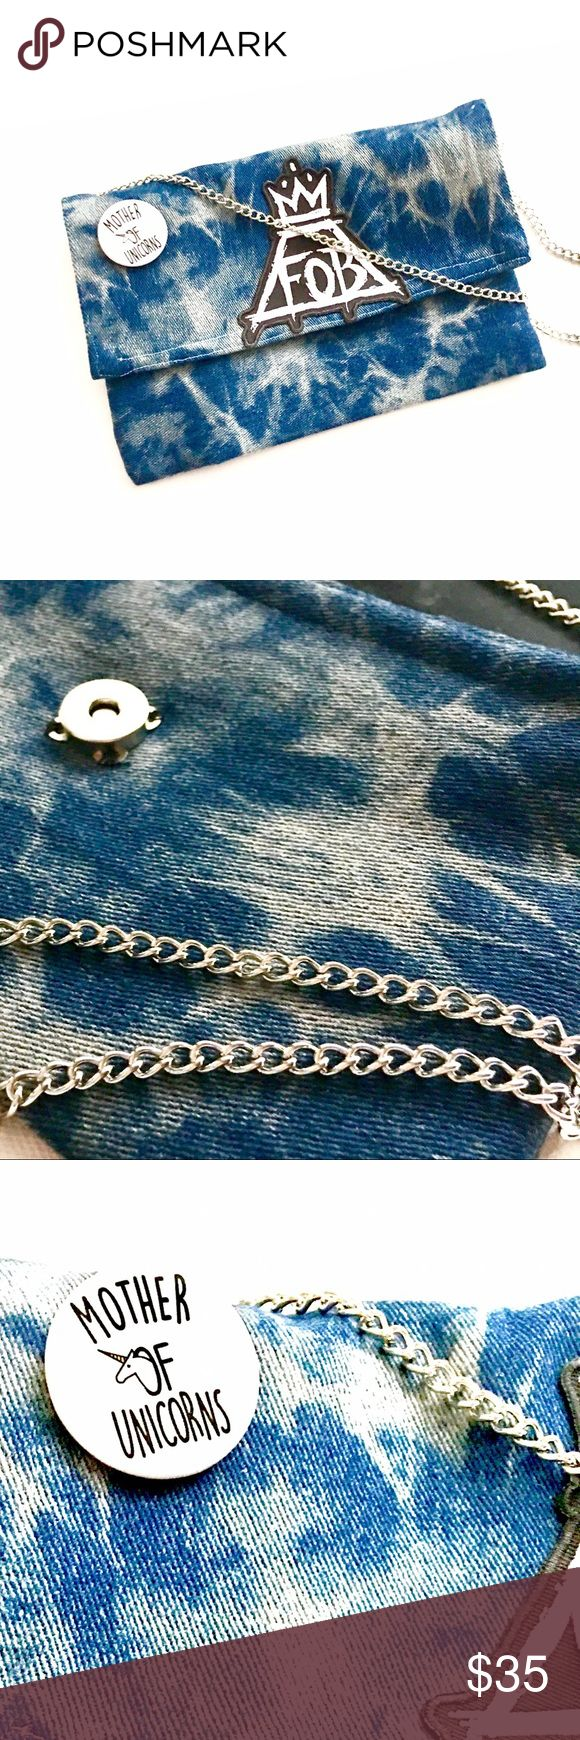 """Slim Silhouette Denim Clutch bag Custom Handmade Denim Slim Silhouette Clutch bag. Detachable 42"""" Silver Crossbody shoulder chain. Simply hold it in your hand or attach the delicate silver chain to wear it across the body. Flap over opening with magnetic snap. 'Mother of Unicorns' pin . Width 8"""", Length 6"""".  Cool and confident, this silhouette slim Clutch Blue Denim is a wear-anywhere indulgence. Bags Crossbody Bags"""